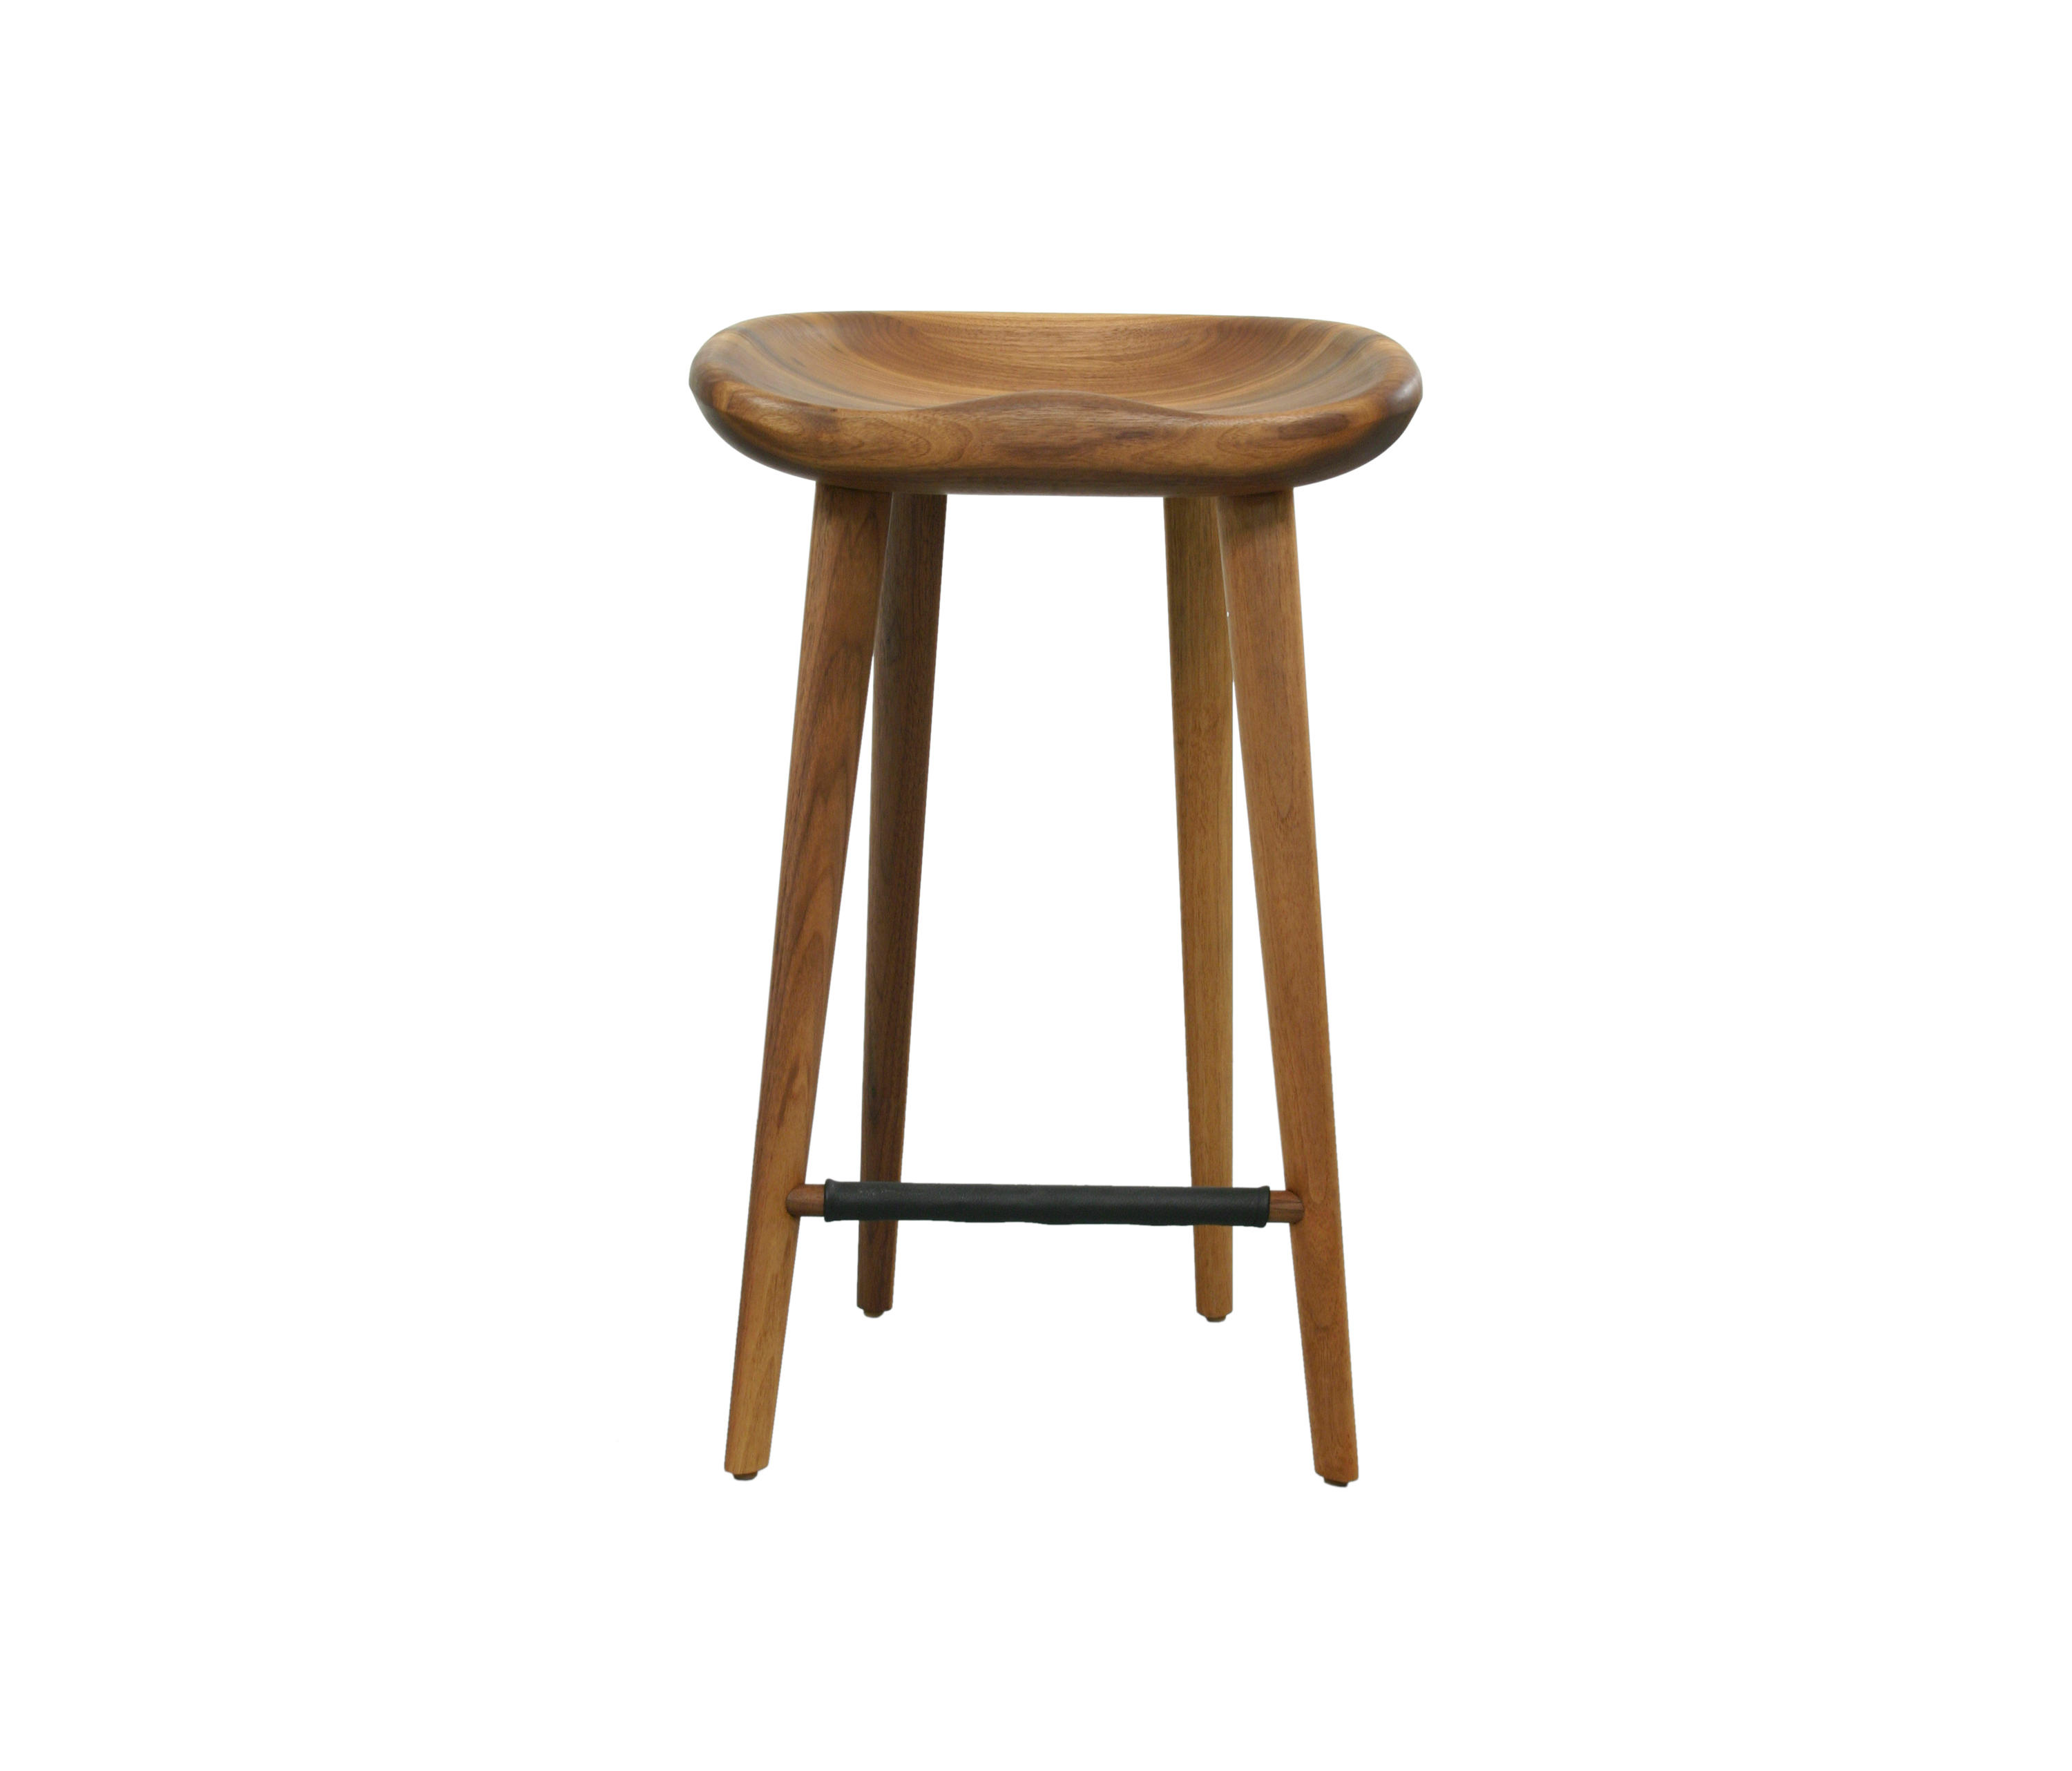 barstool size furniture with parisian chairs dark backlessitchen full duff yellow bar for fort agreeable lumisource contemporary paris pottery lennox counter stools archived steel rattan stool bistro french black restaurant folding leather barn stainless aluminum backless of woven myers